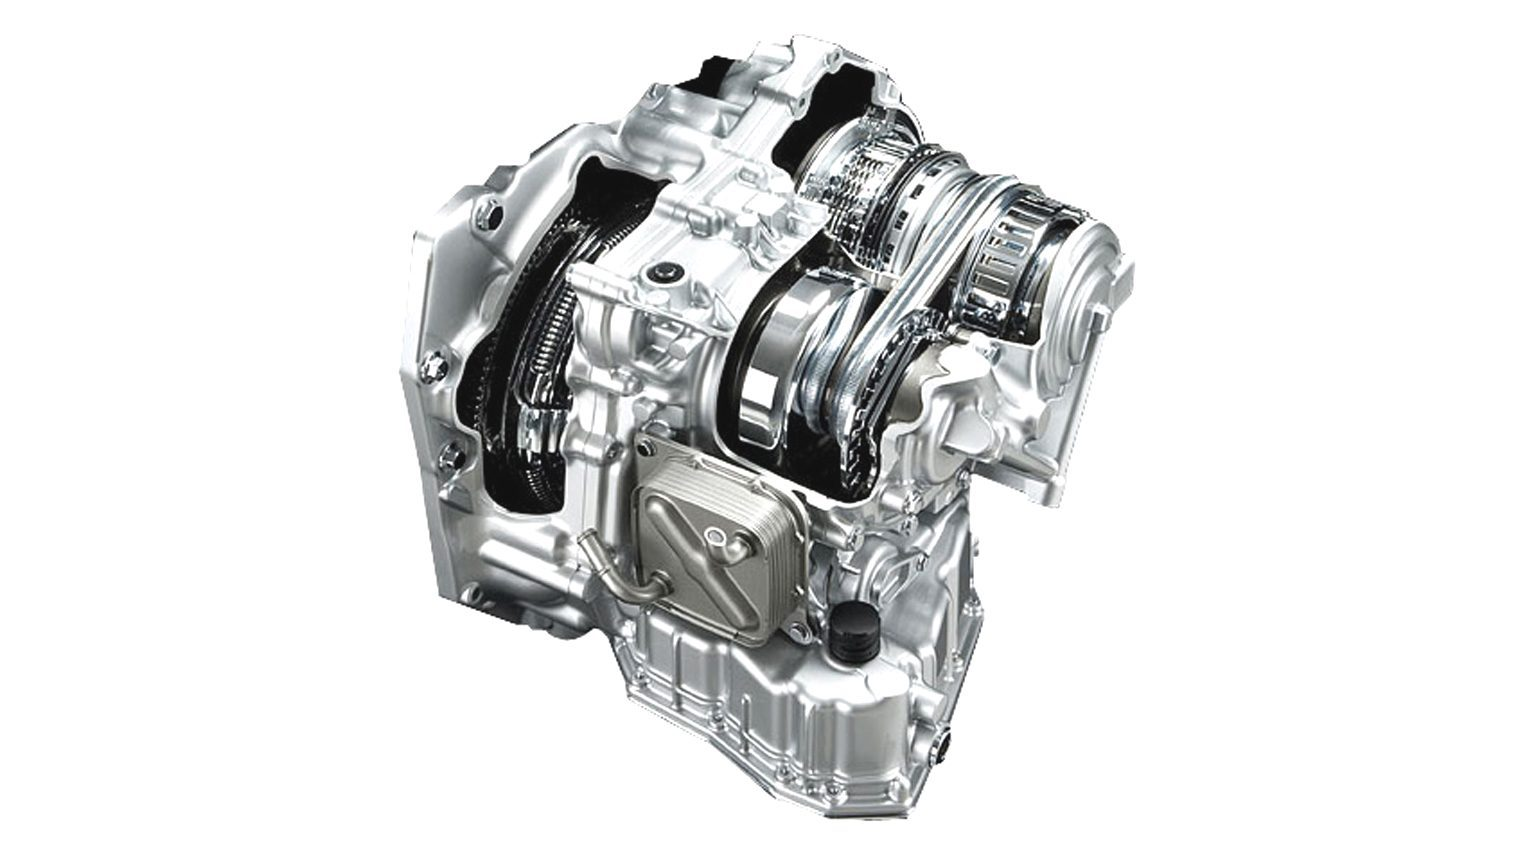 CONTINUOUSLY VARIABLE TRANSMISSION (CVT) D-STEP